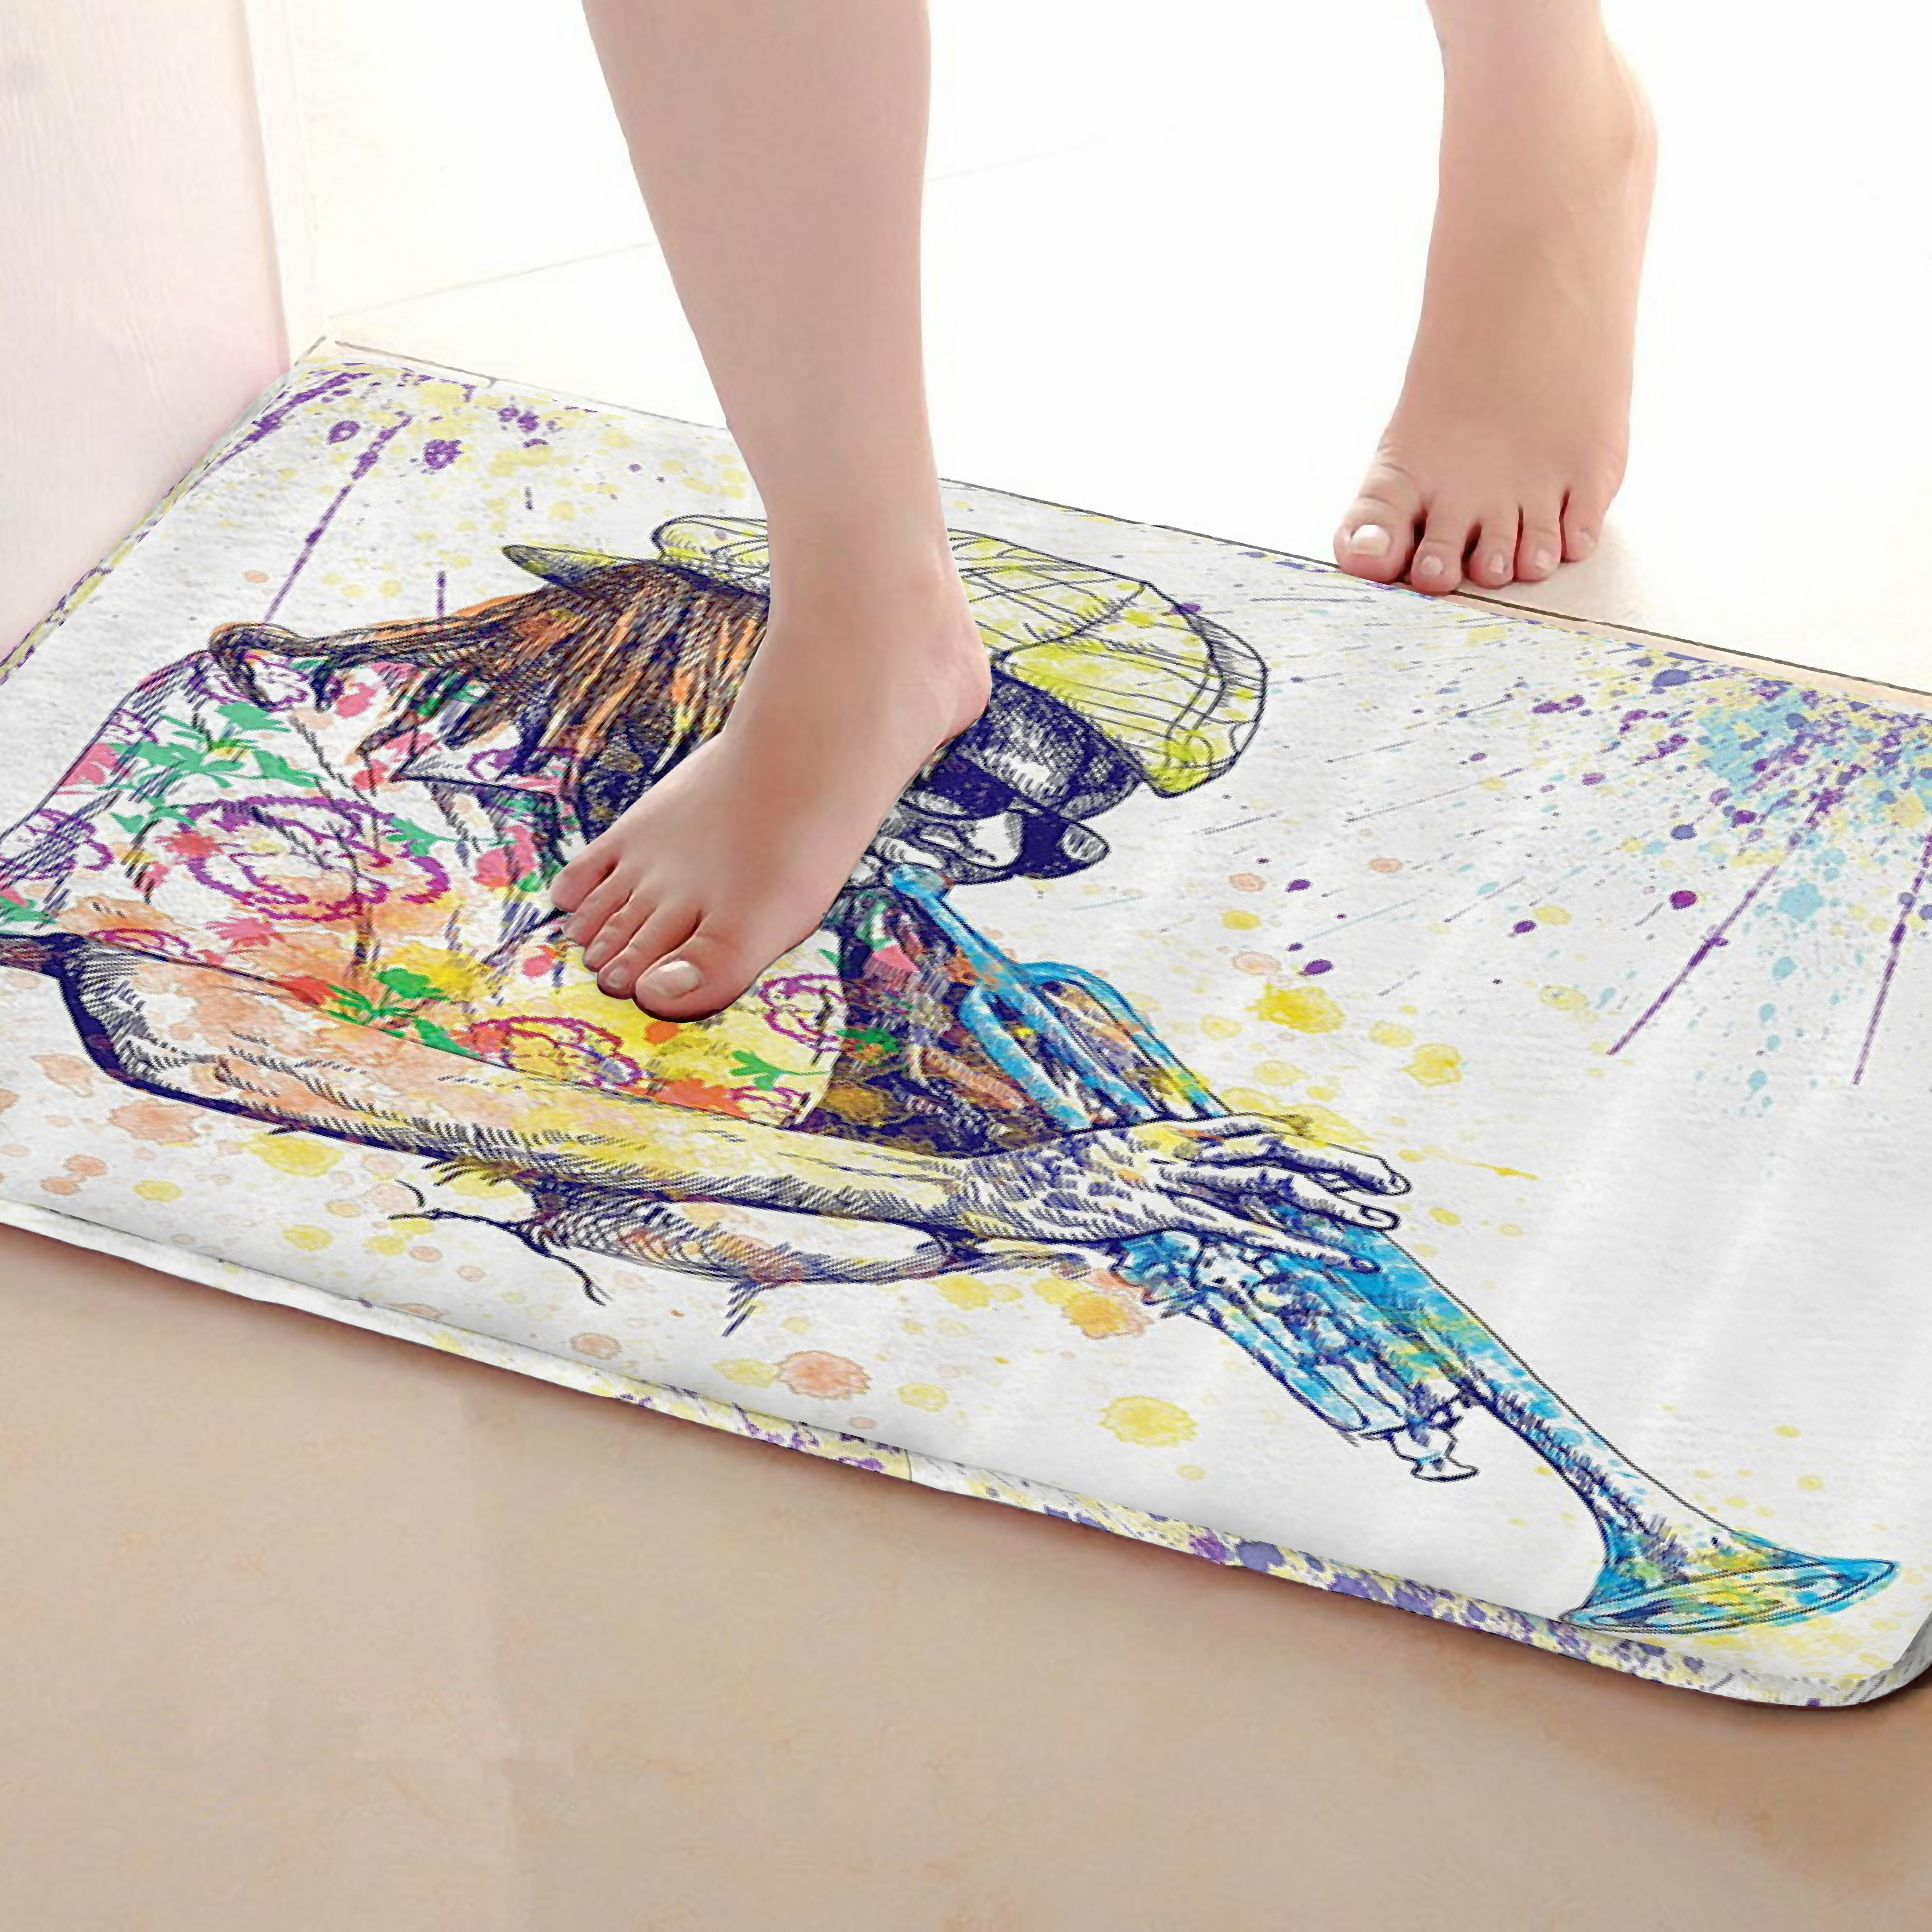 Musician Style Bathroom Mat,Funny Anti skid Bath Mat,Shower Curtains Accessories,Matching Your Shower Curtain